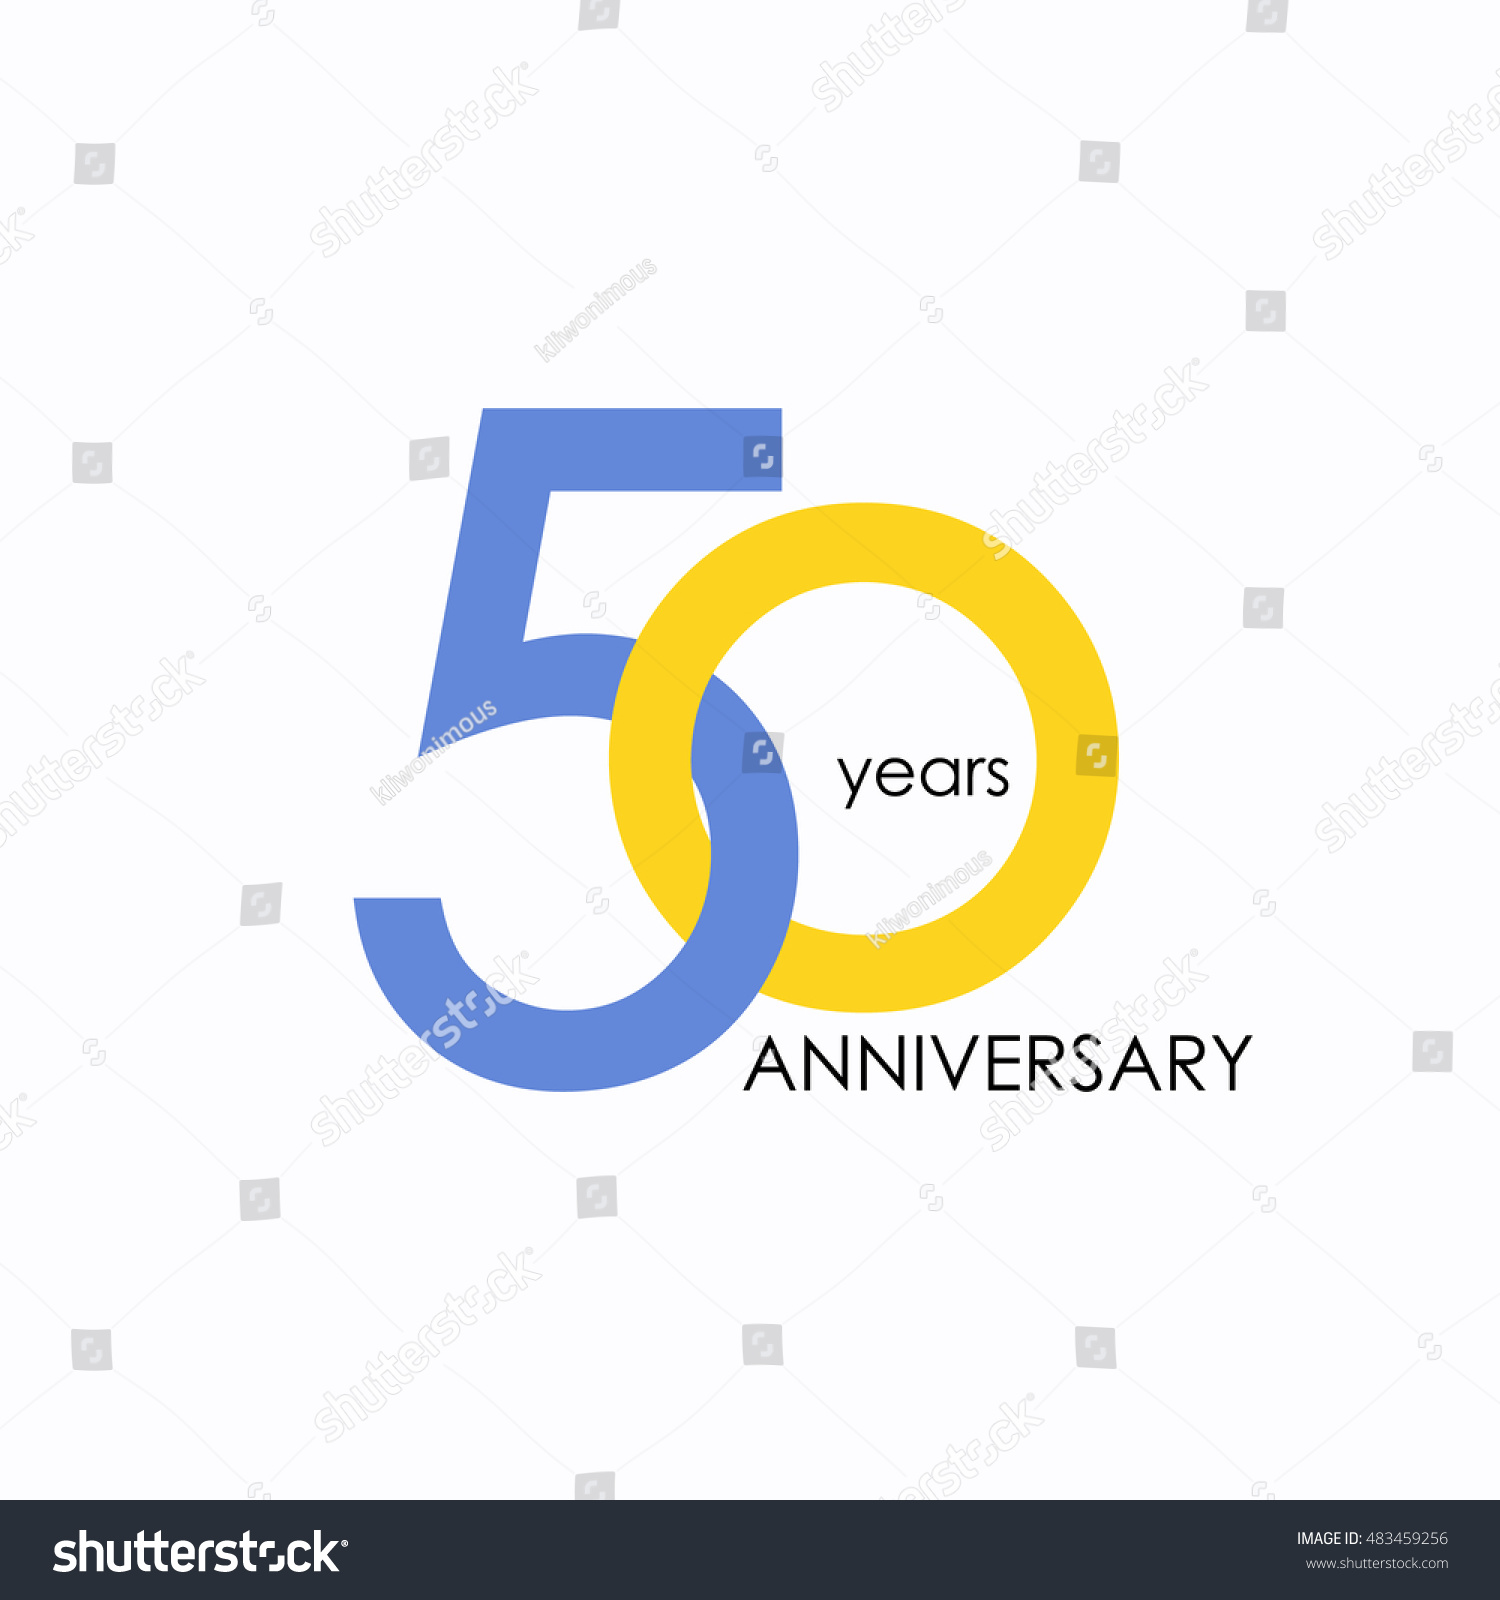 50 years anniversary signs symbols which stock vector 483459256 50 years anniversary signs symbols which is yellow and blue with flat design buycottarizona Choice Image